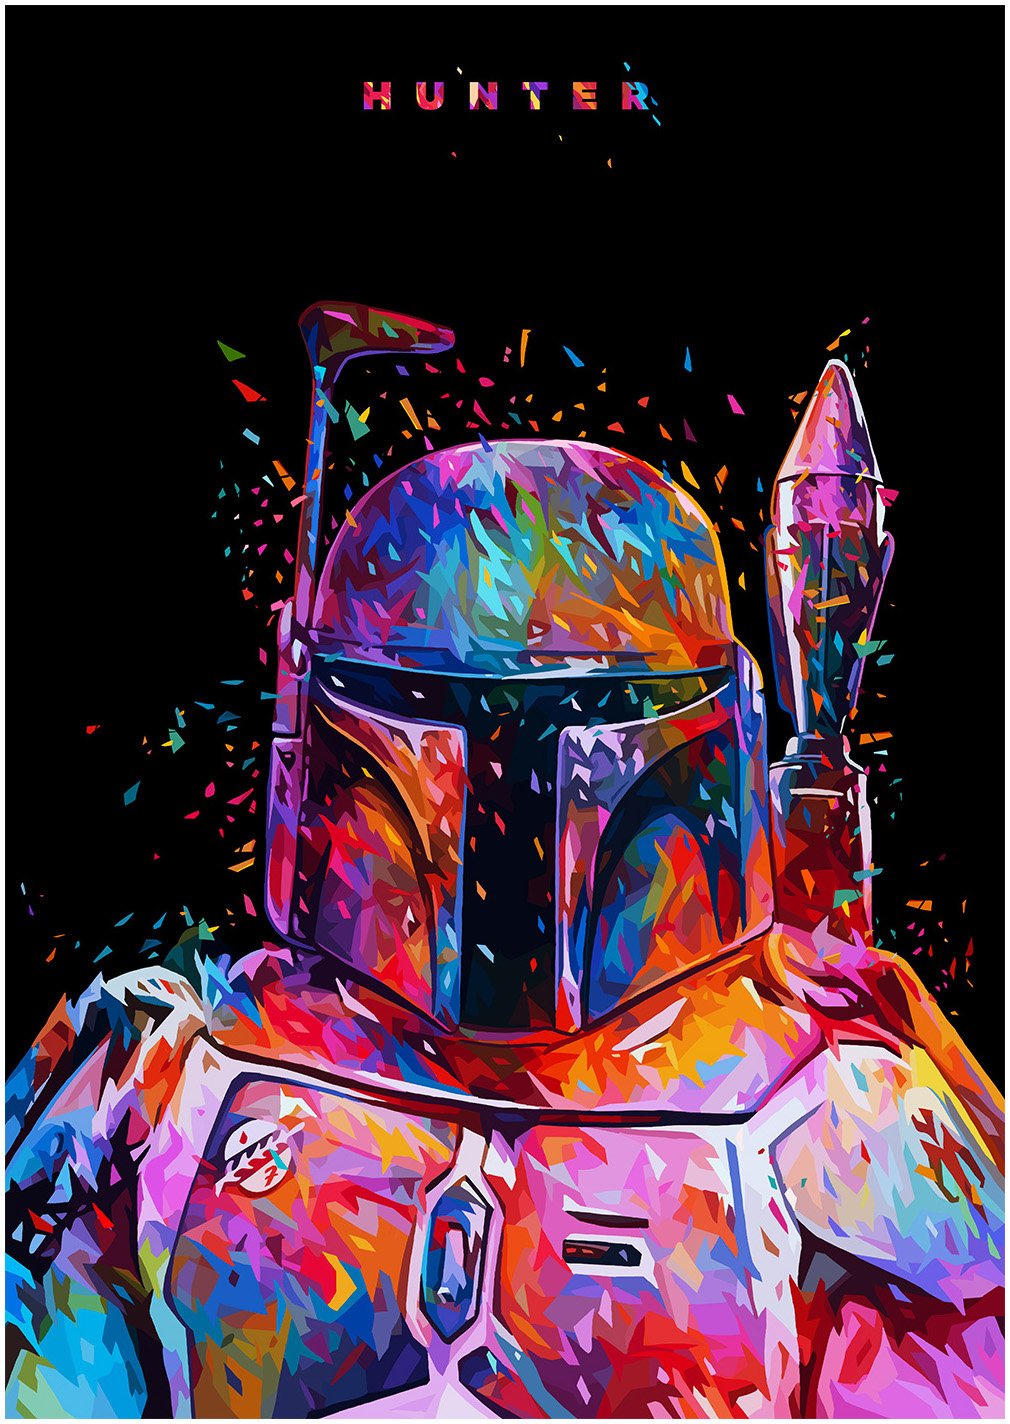 Star Wars Tribute - Boba Fett by Alessandro Pautasso